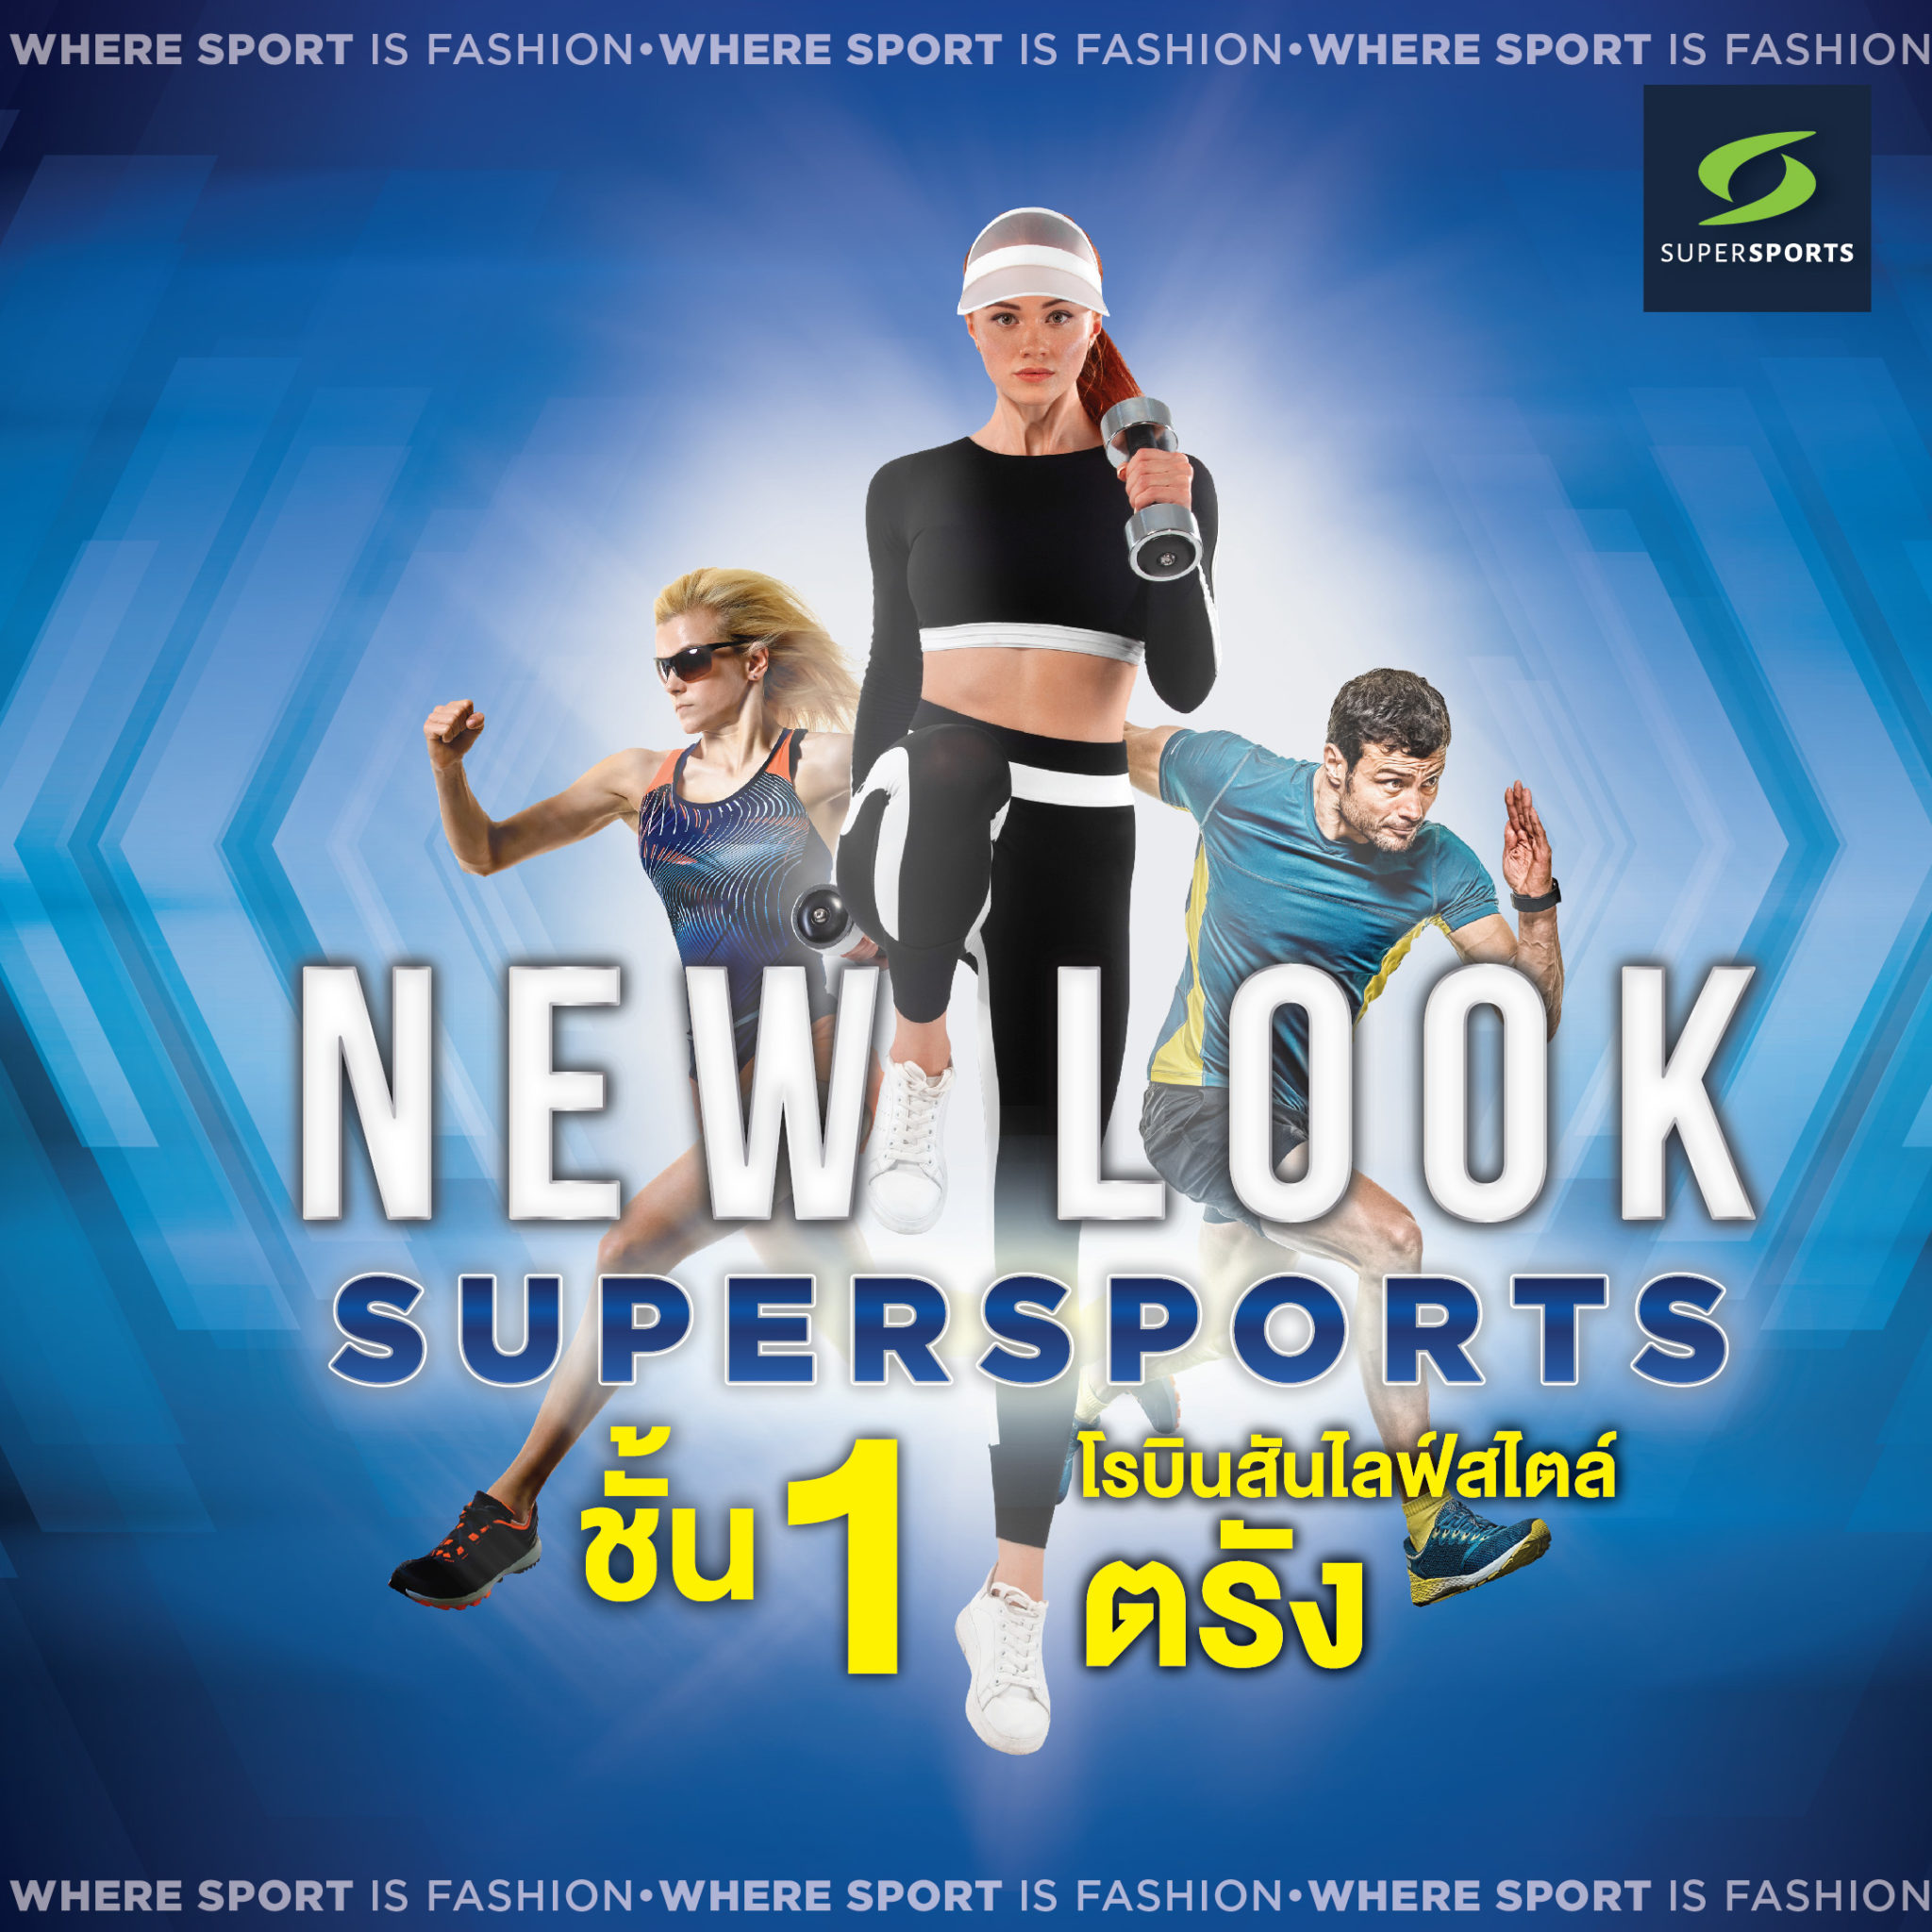 SUPERSPORTS NEW LOOK @ ROBINSON LIFESTYLE TRANG